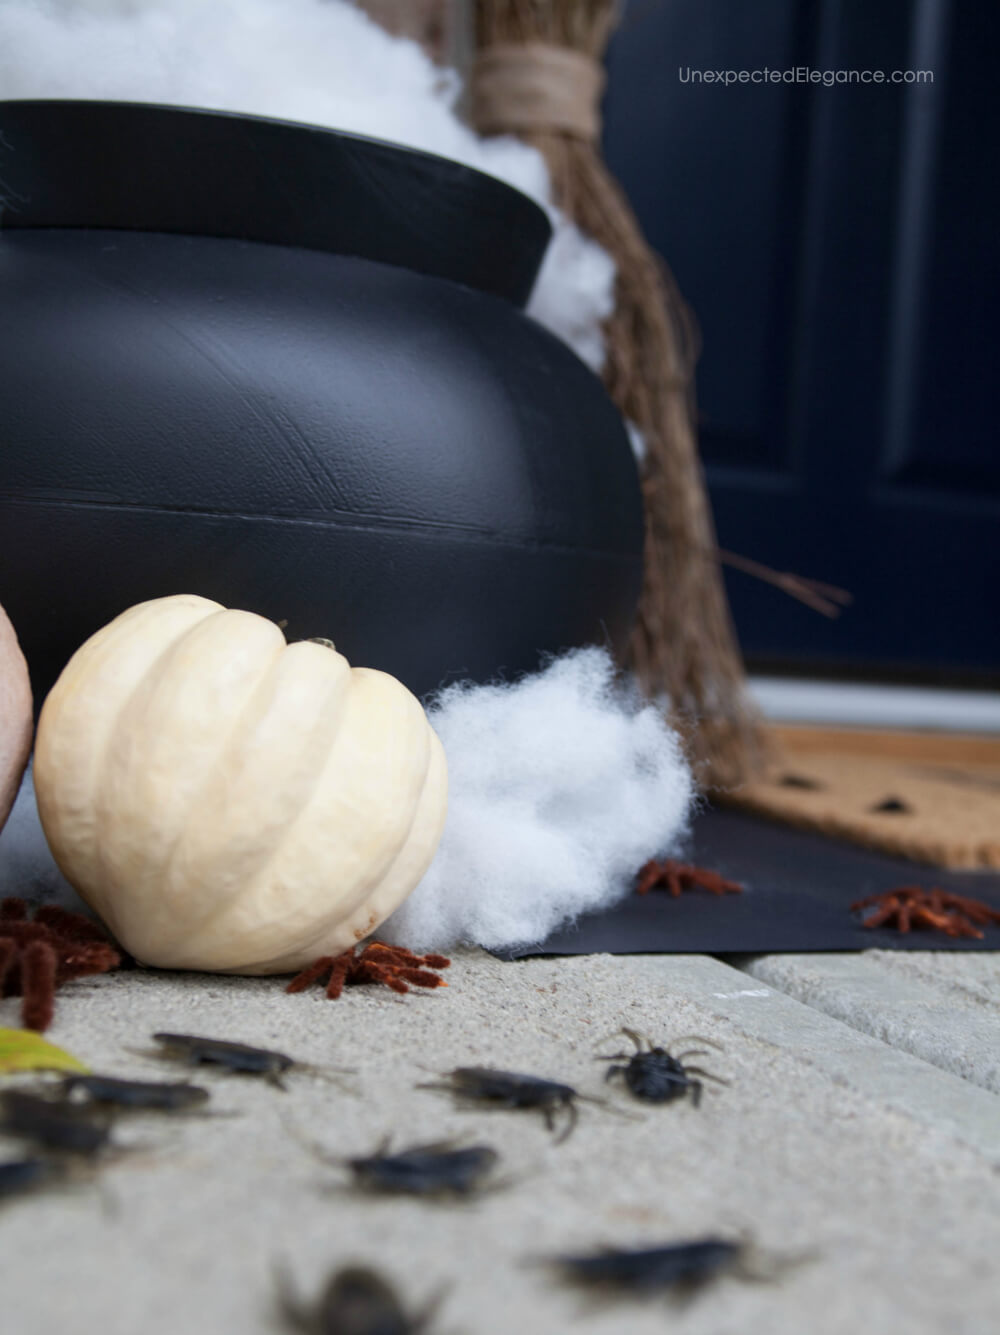 Smoky cauldron tutorial for Halloween!